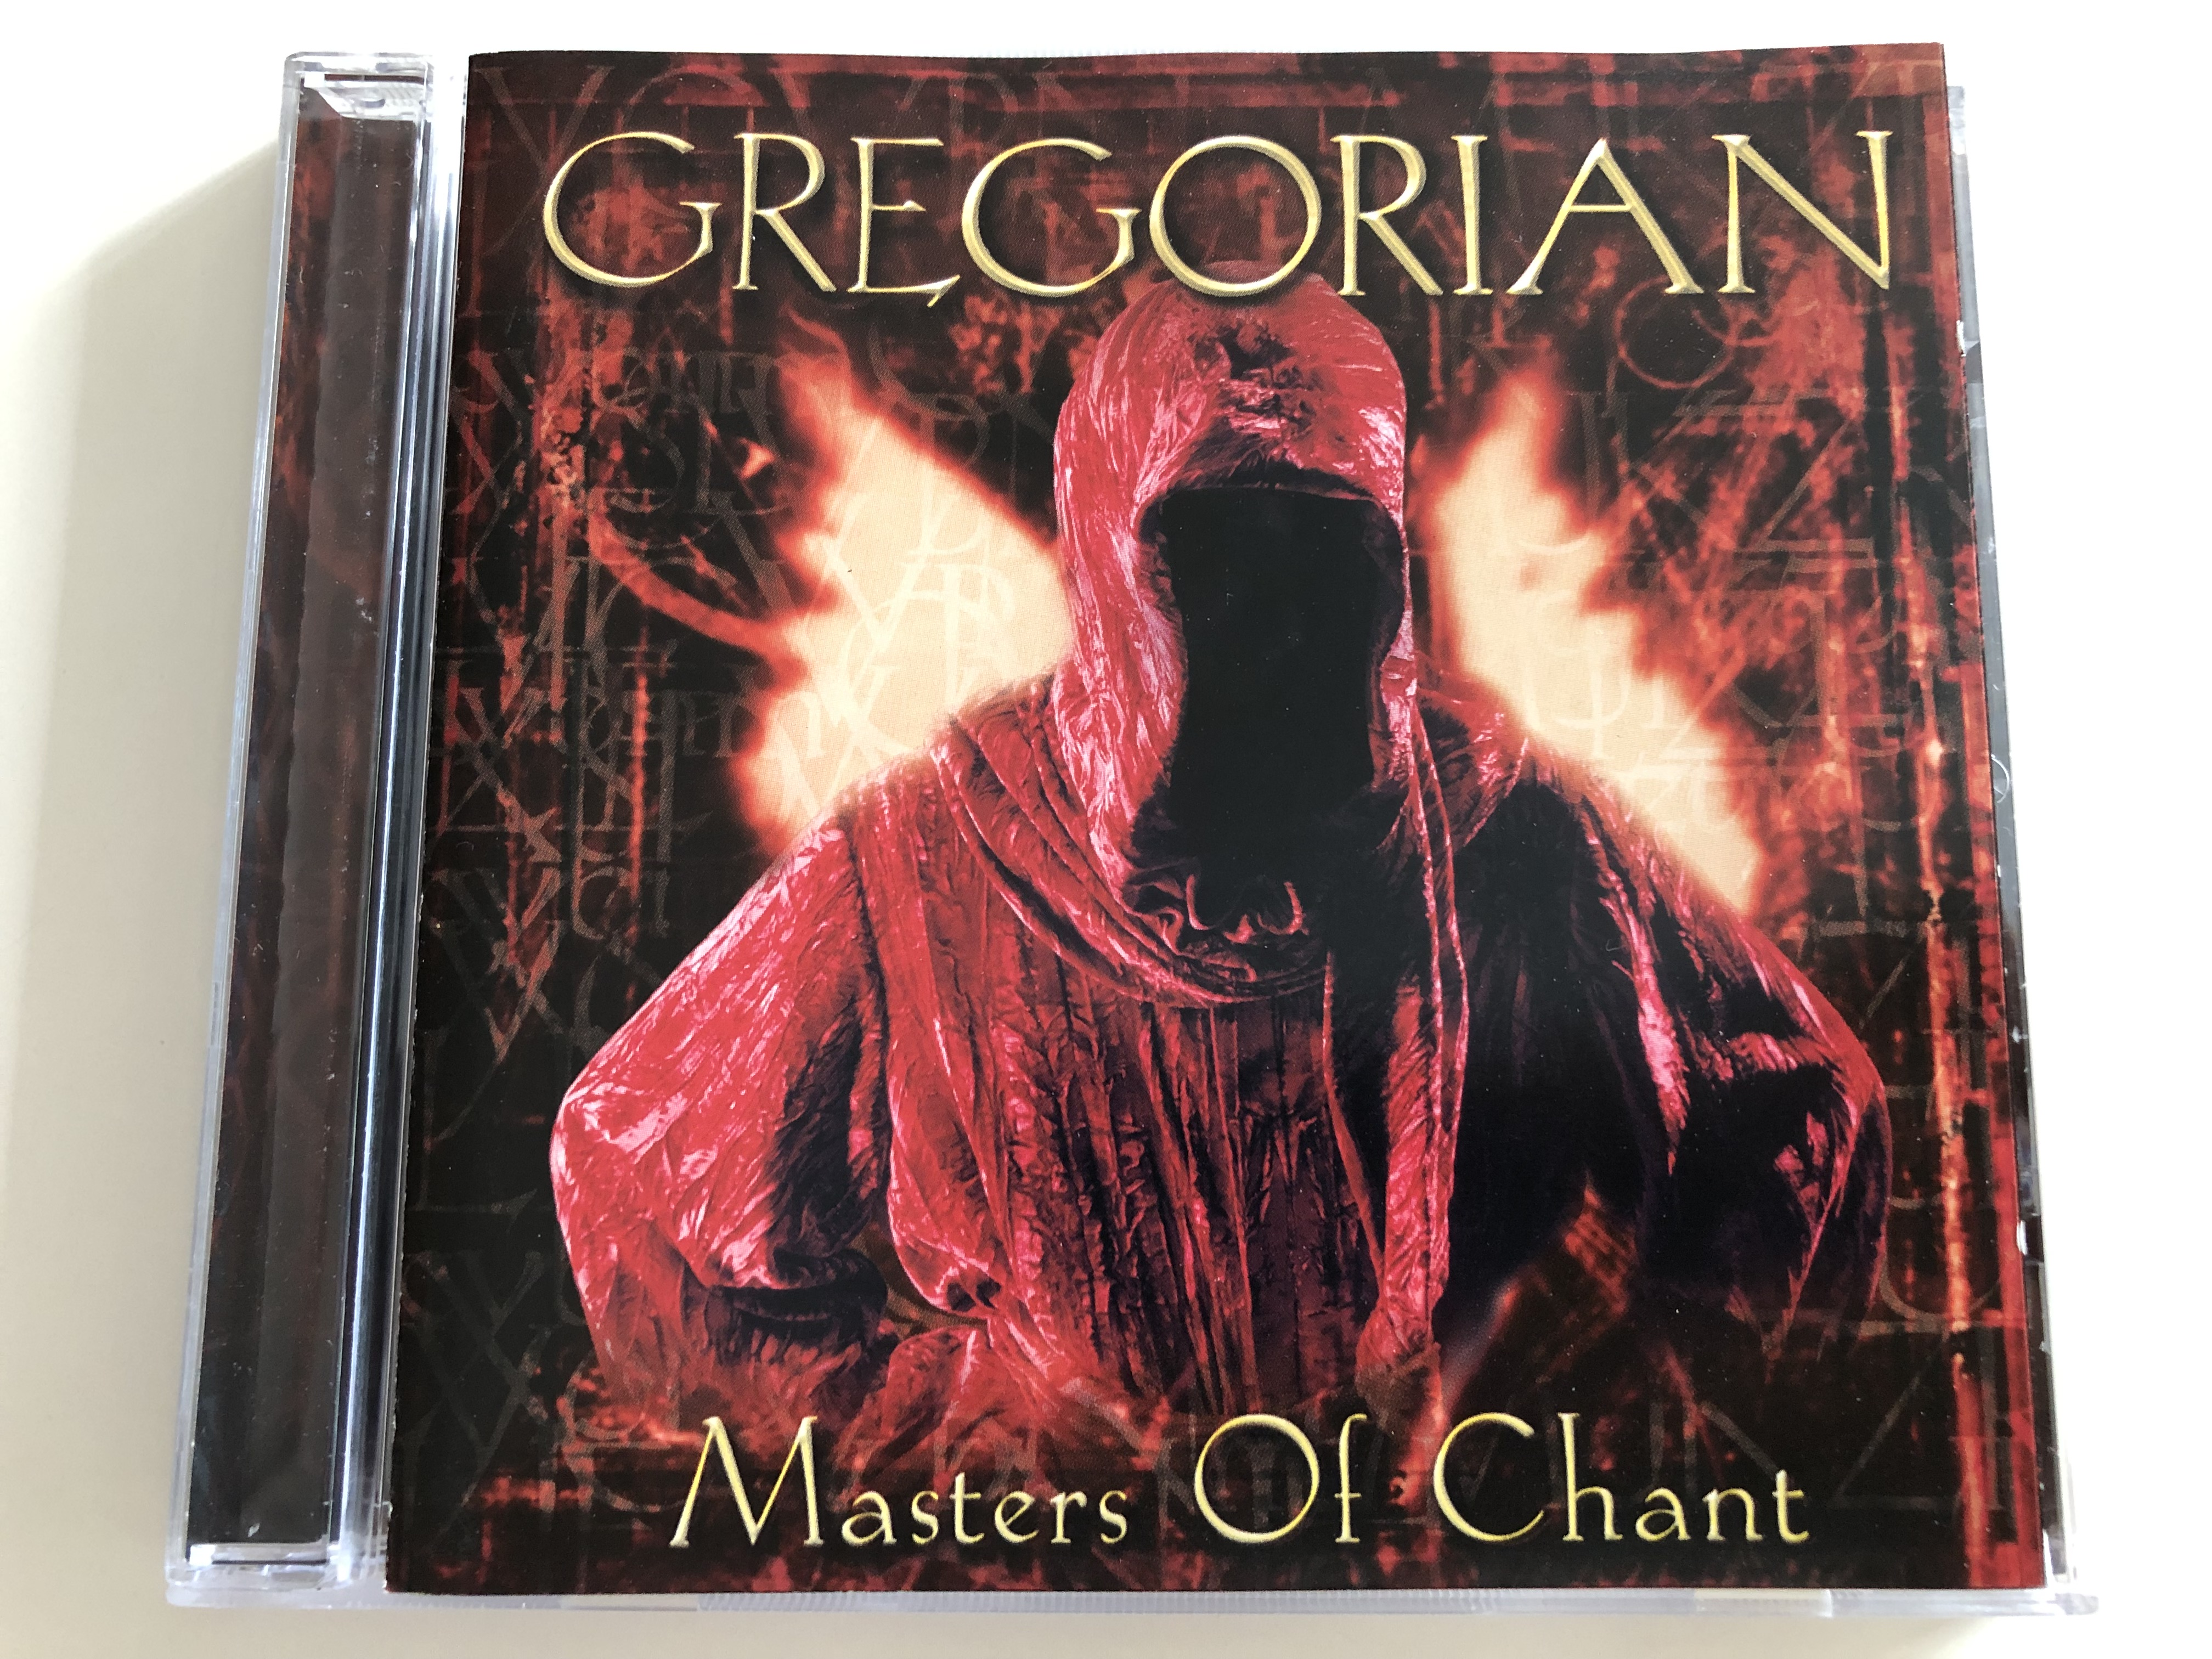 gregorian-masters-of-chant-brothers-in-arms-still-i-m-sad-vienna-don-t-give-up-audio-cd-2000-edel-gregorian-versions-of-popular-songs-1-.jpg